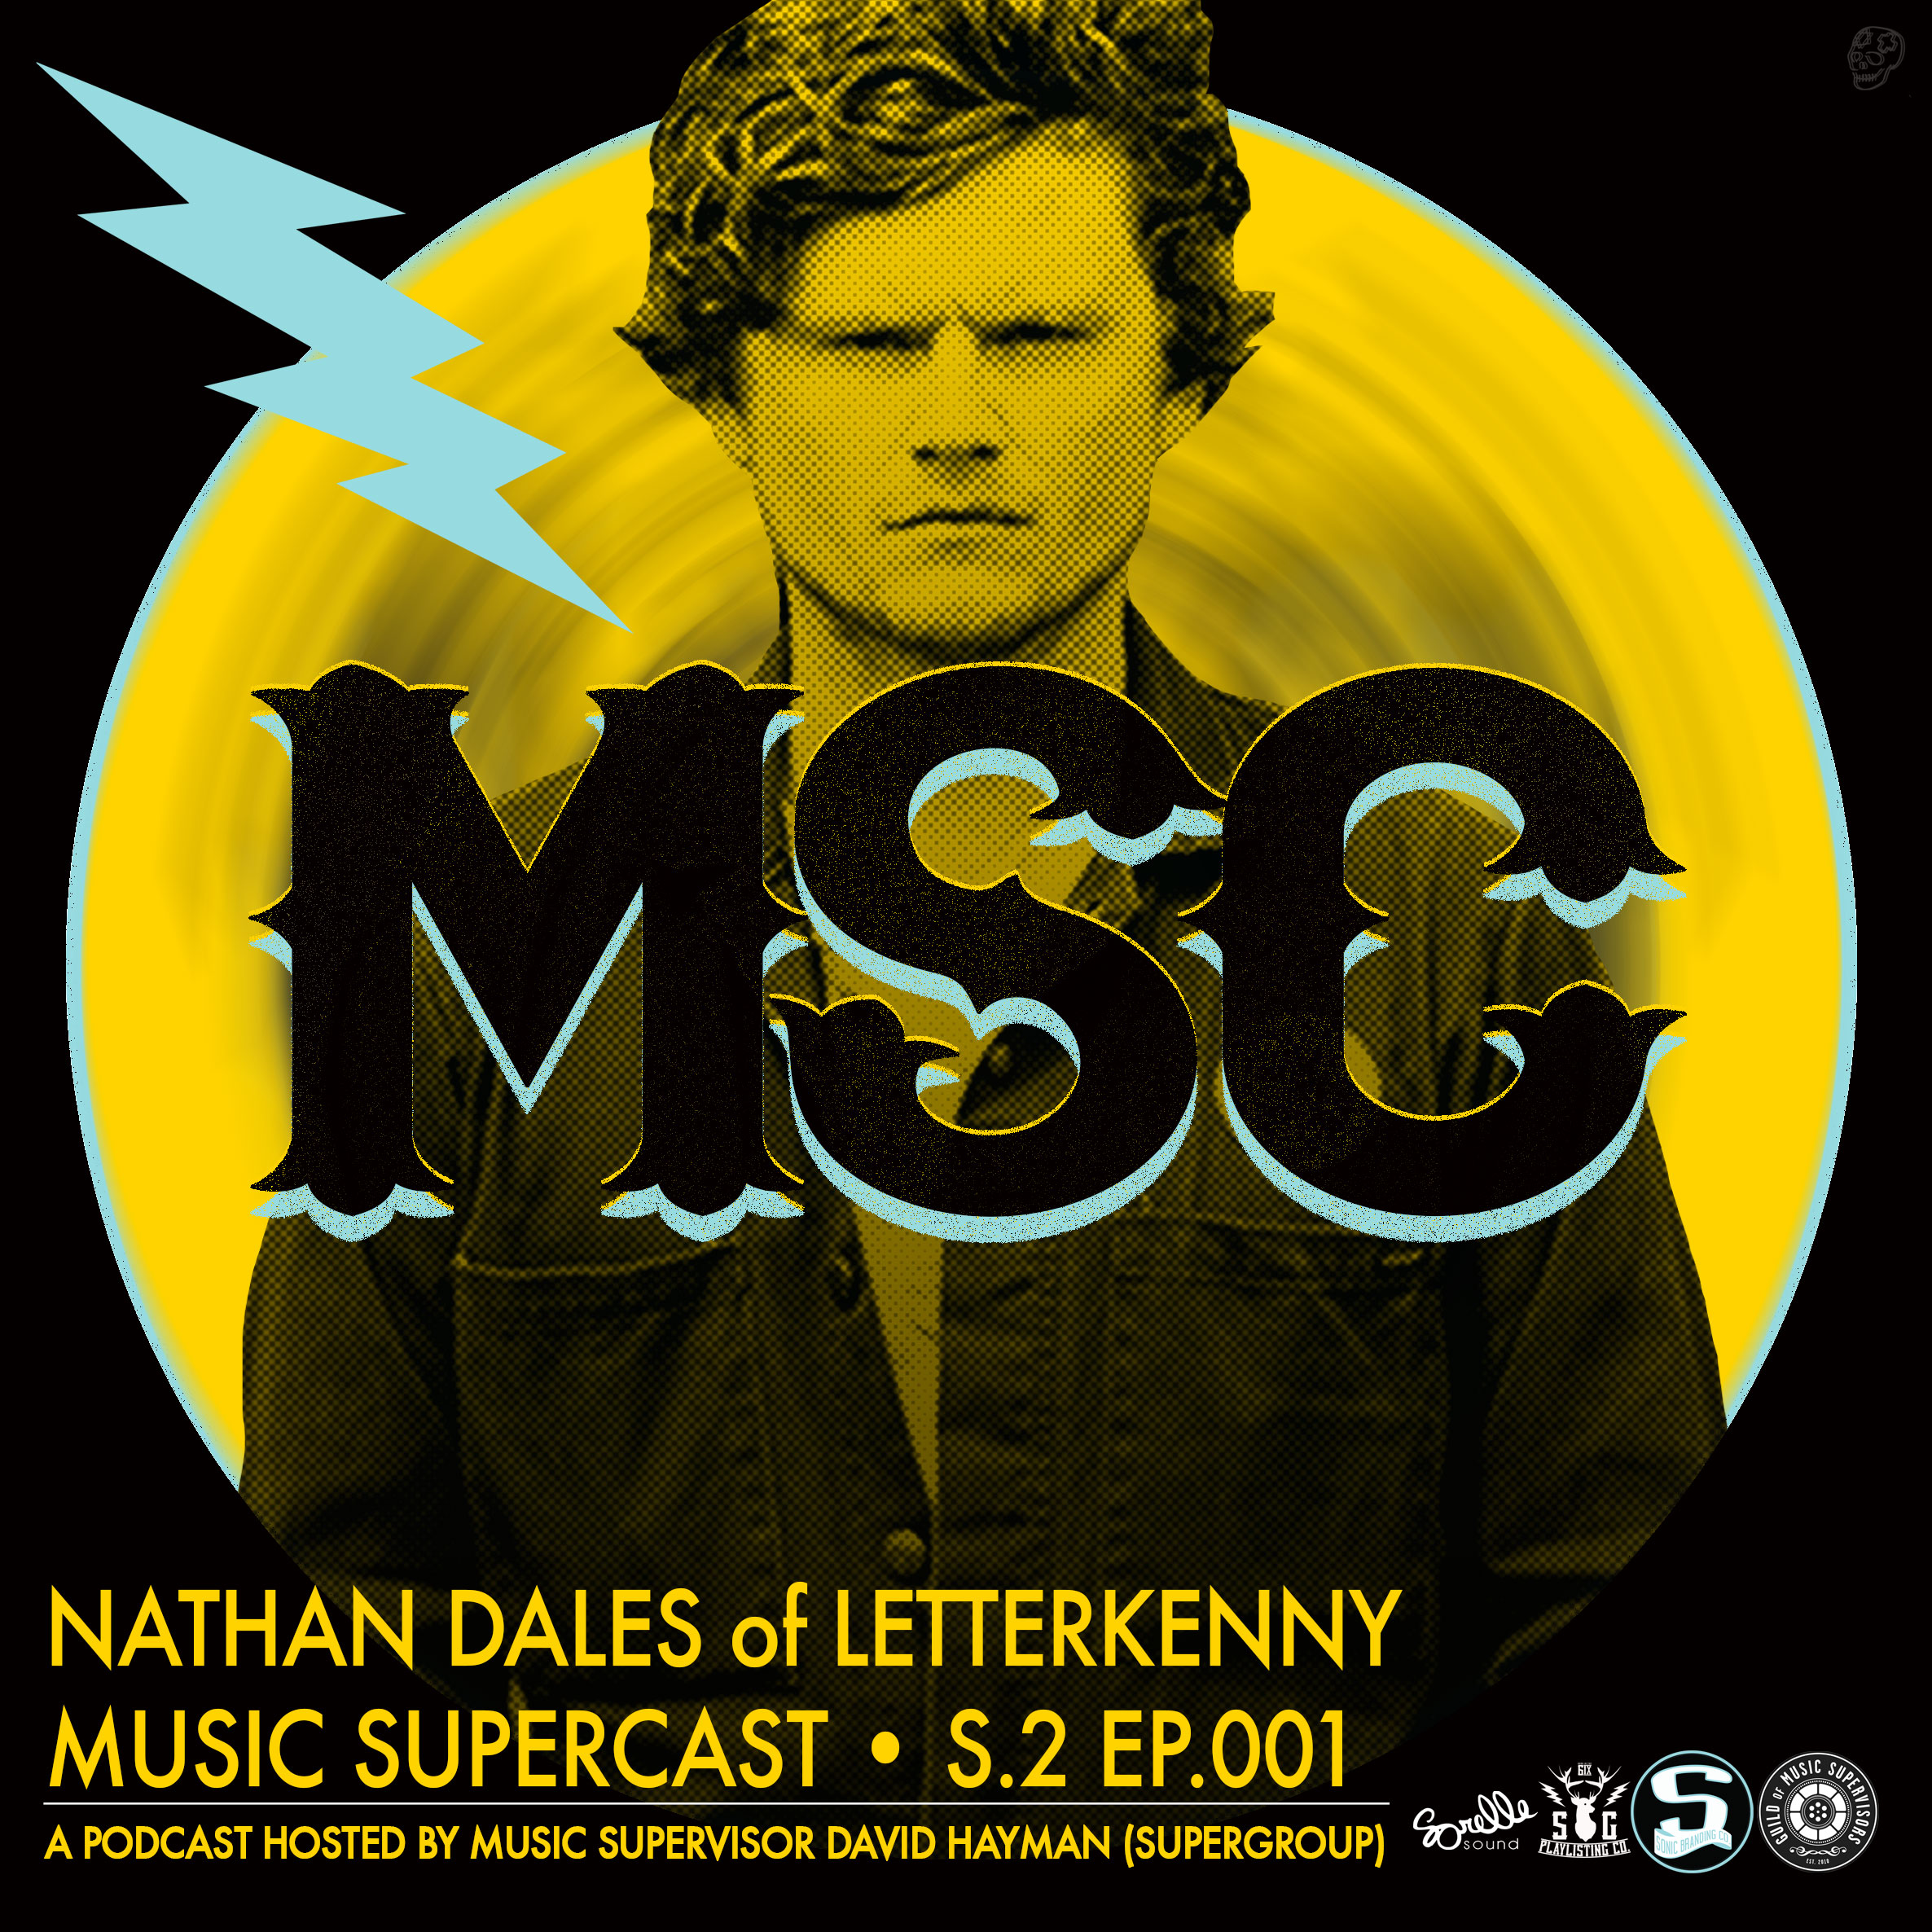 SUPERCAST-S2-COVER-NathanDales.jpg